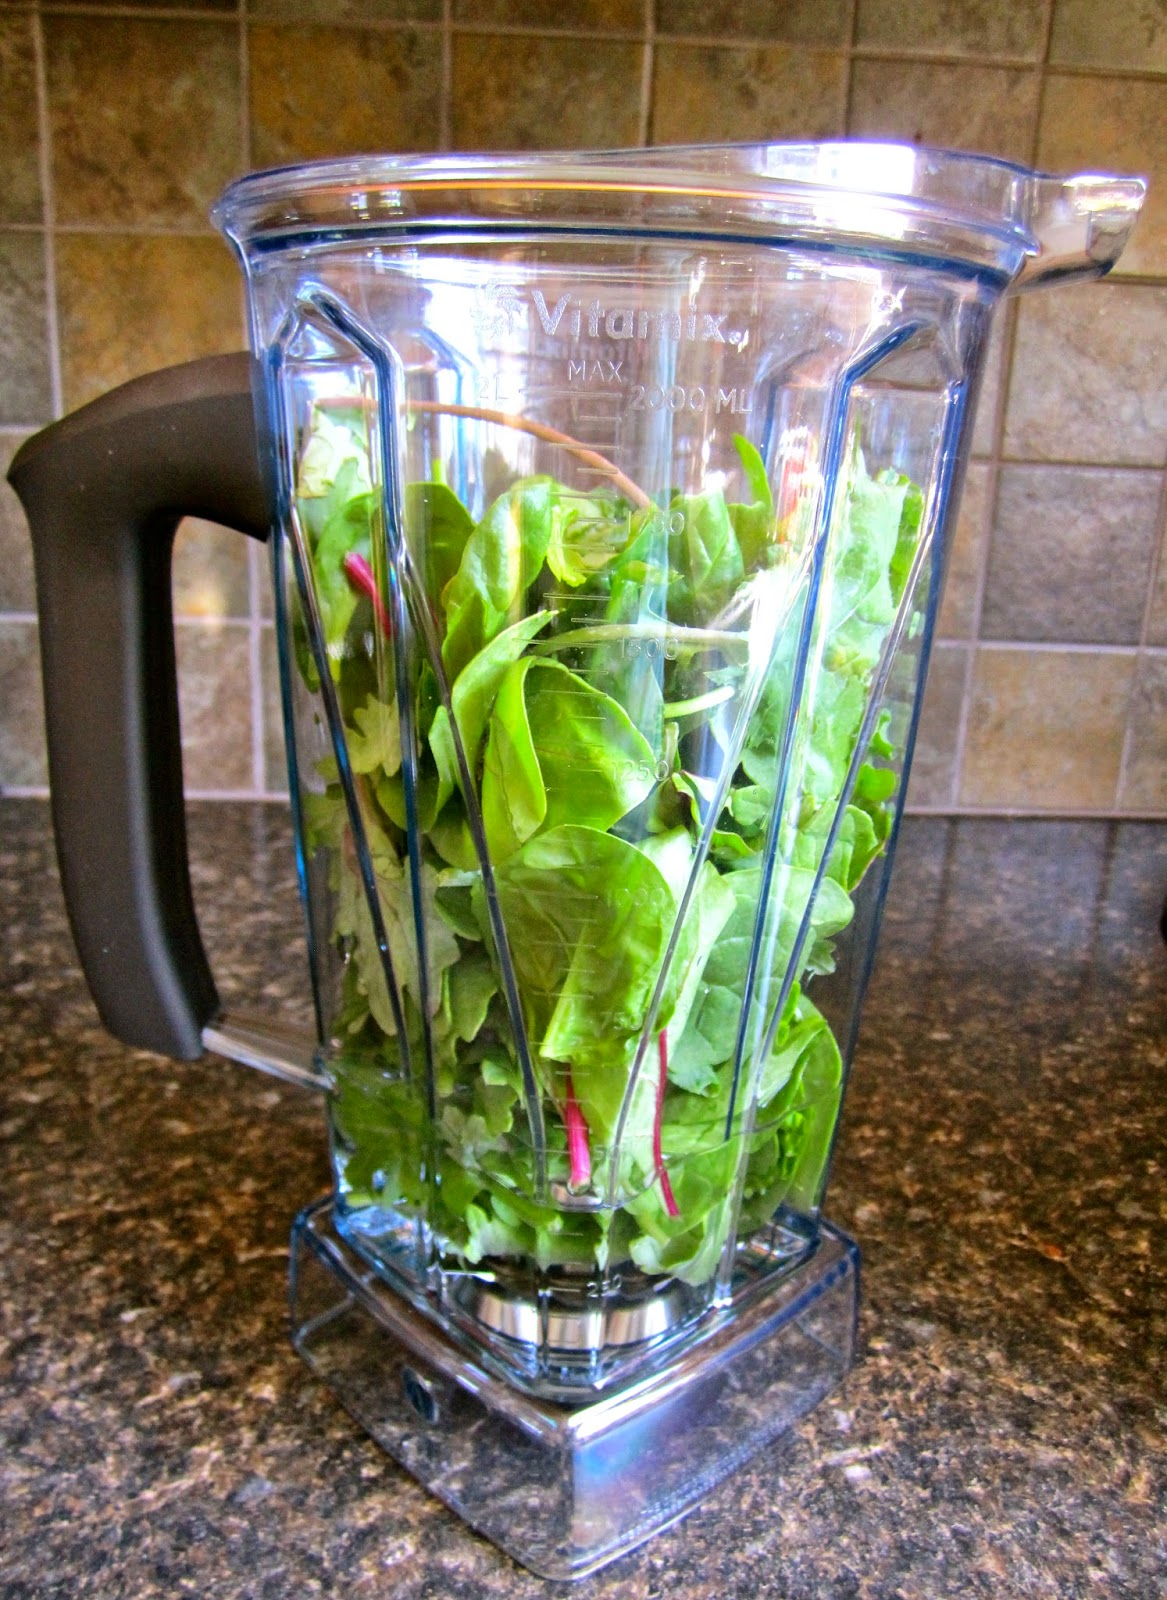 Vitamix Ultimate green smoothie